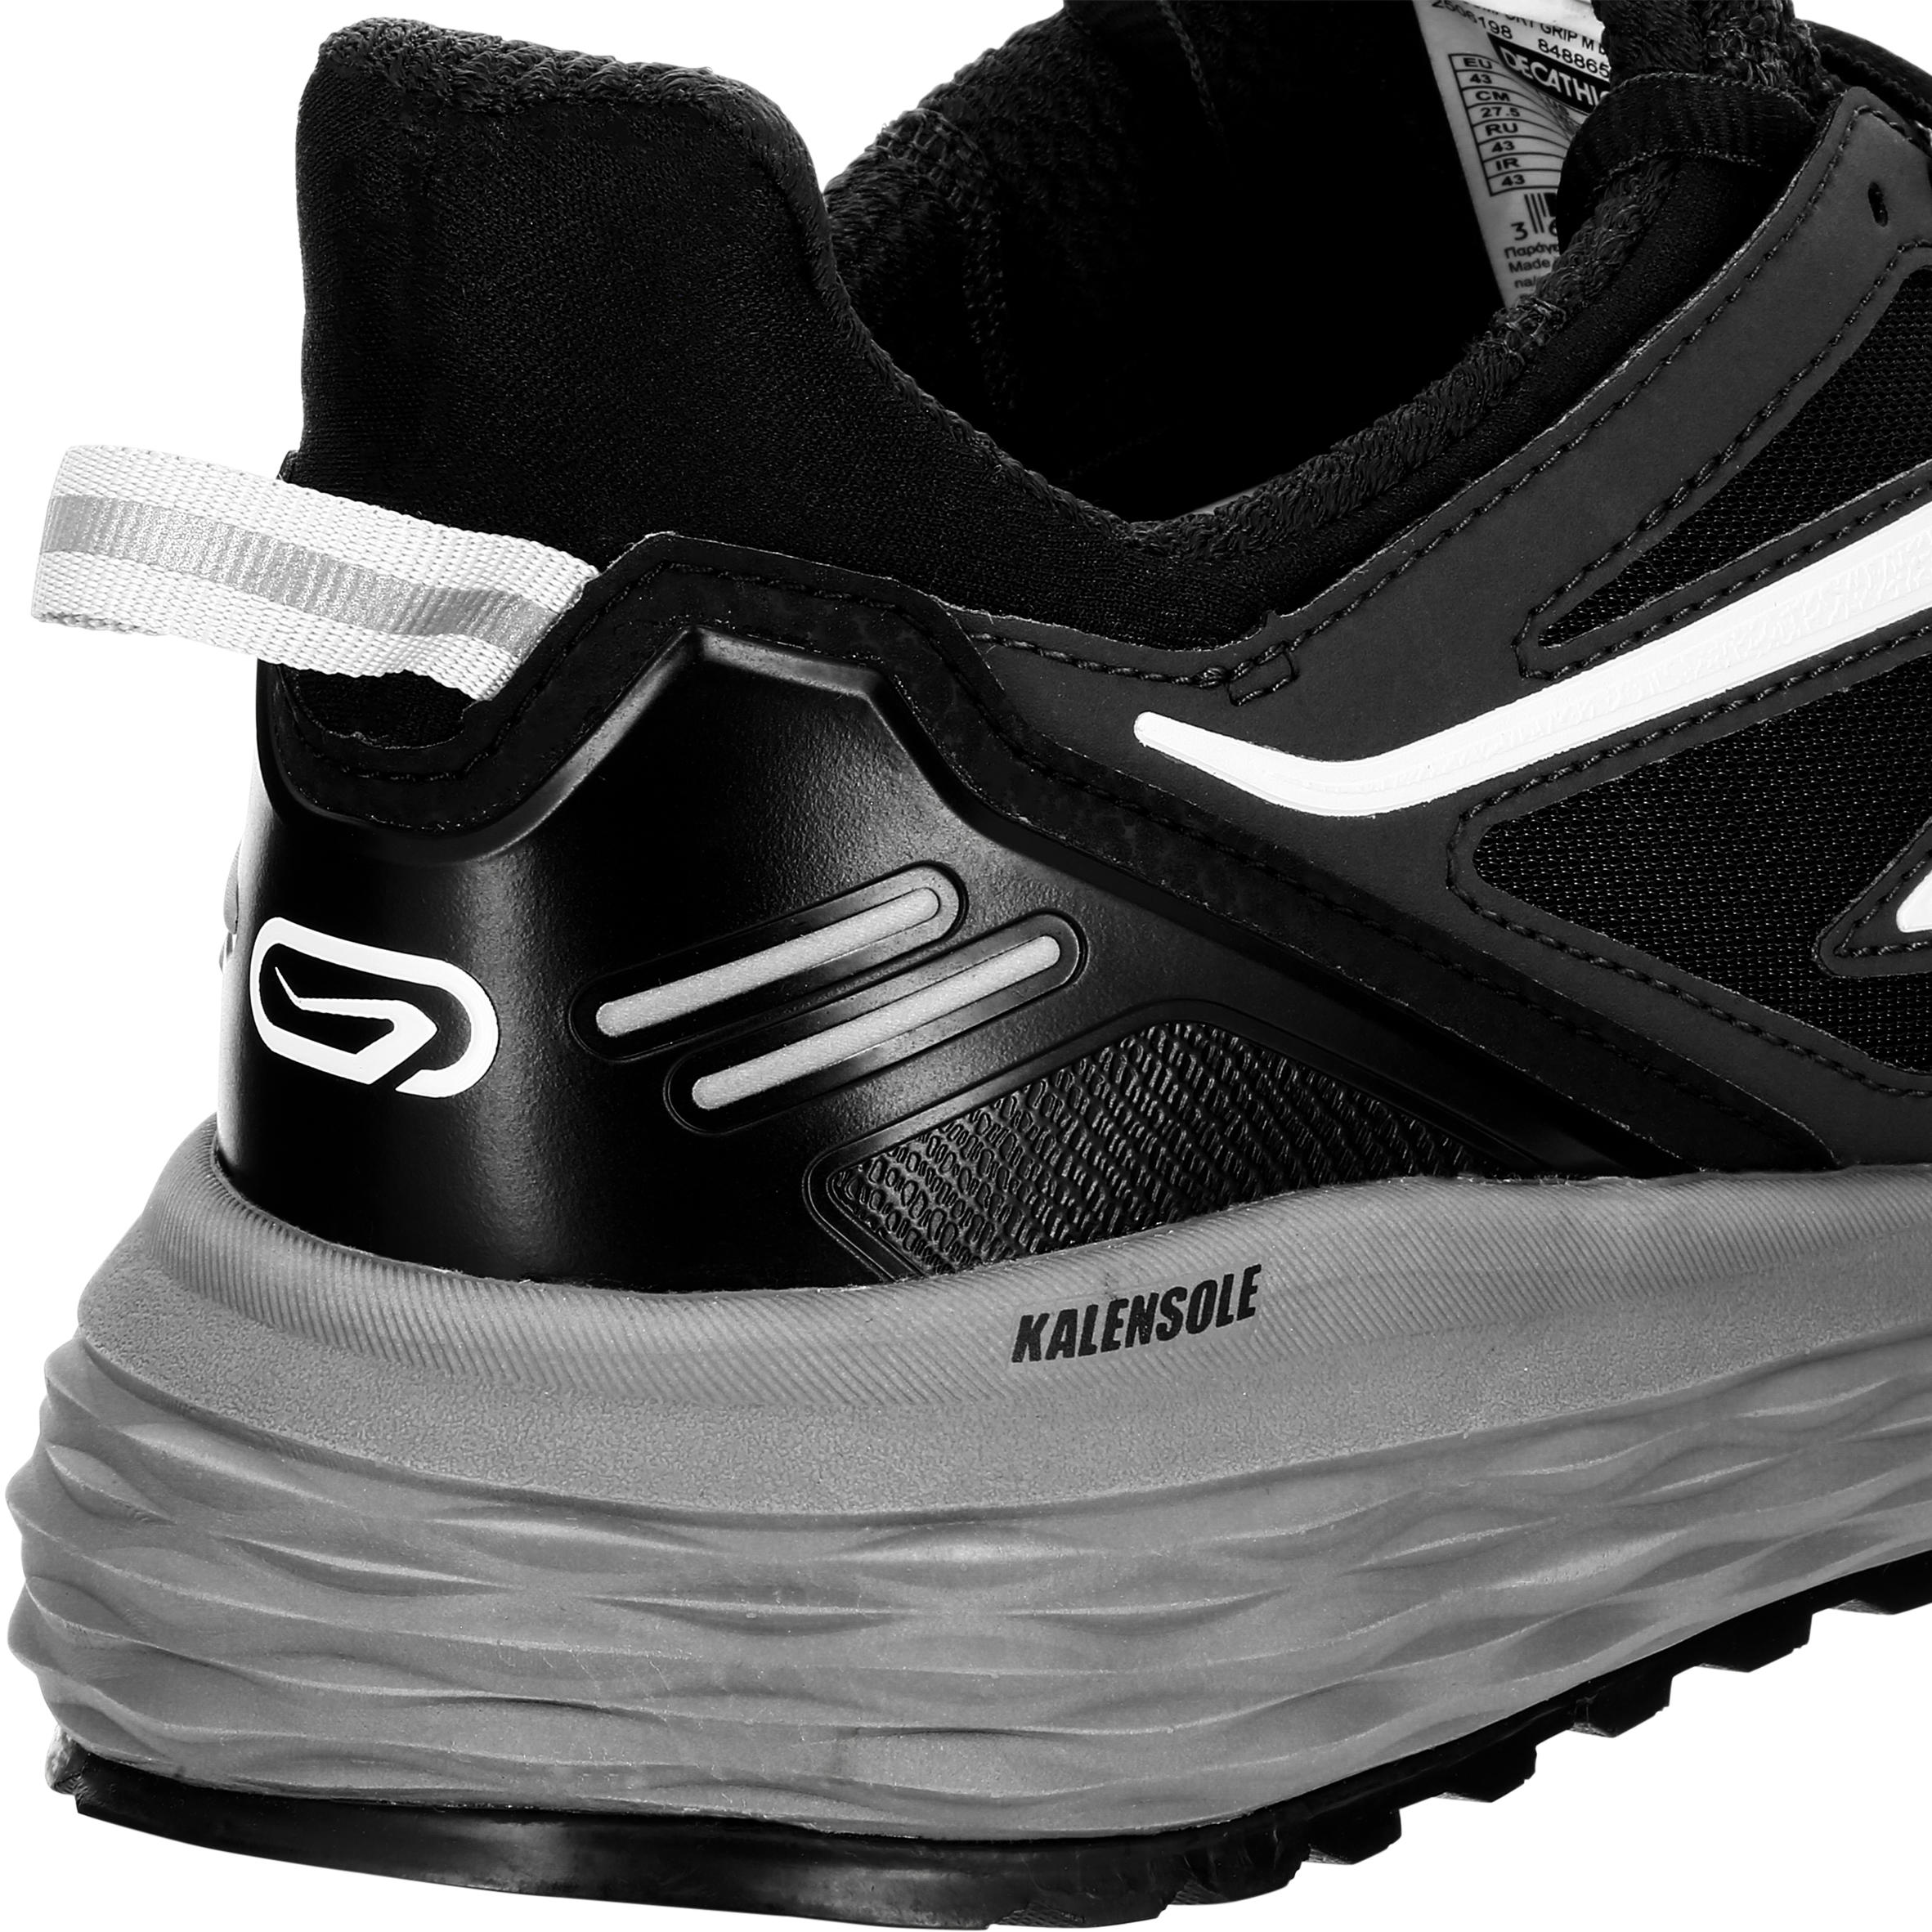 comfortable black running shoes